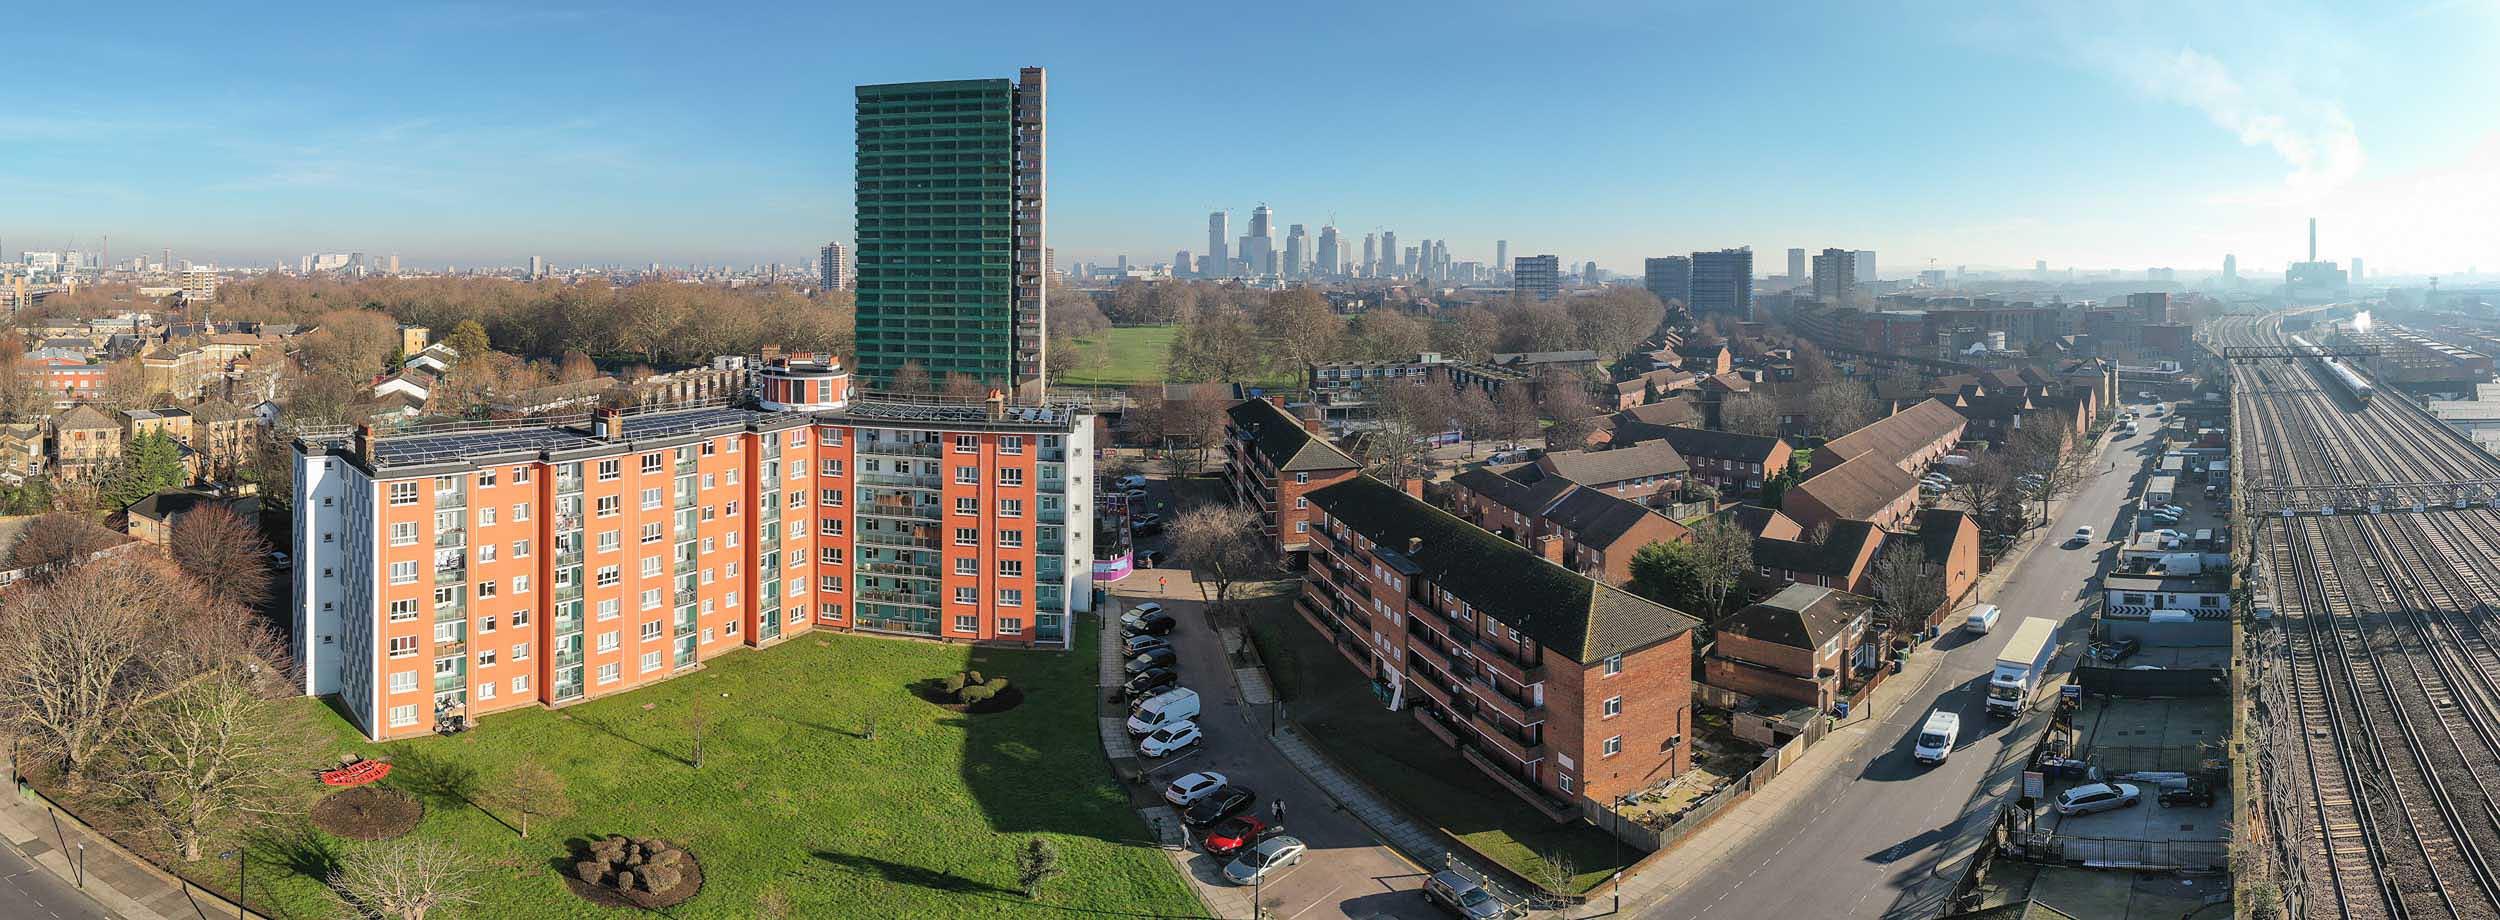 aerial-photography-london-drone-view-bermondsey